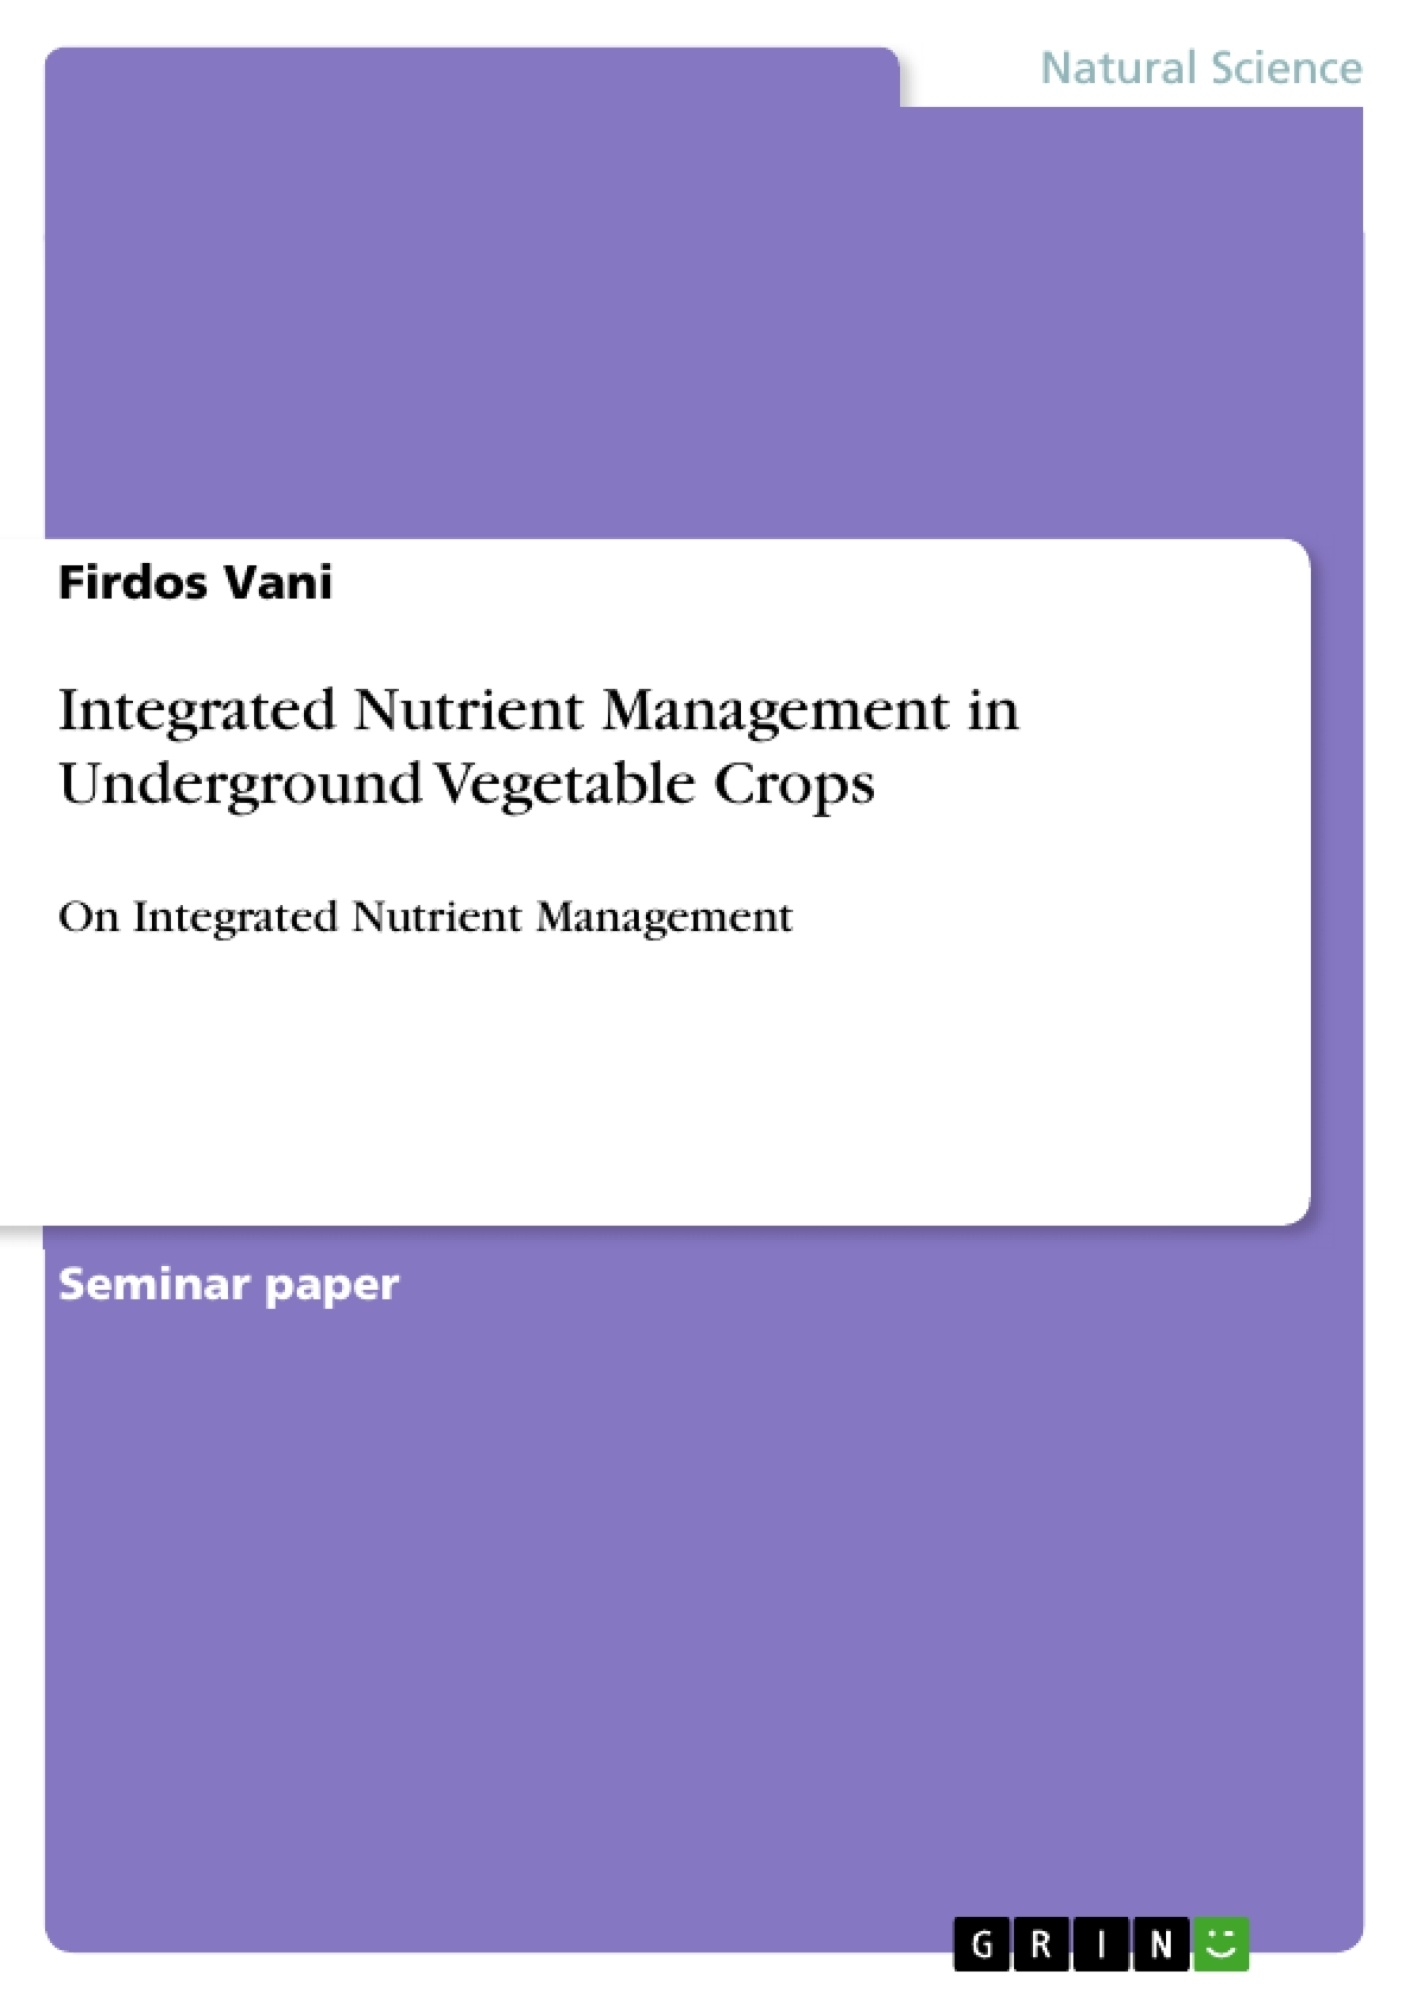 Title: Integrated Nutrient Management in Underground Vegetable Crops